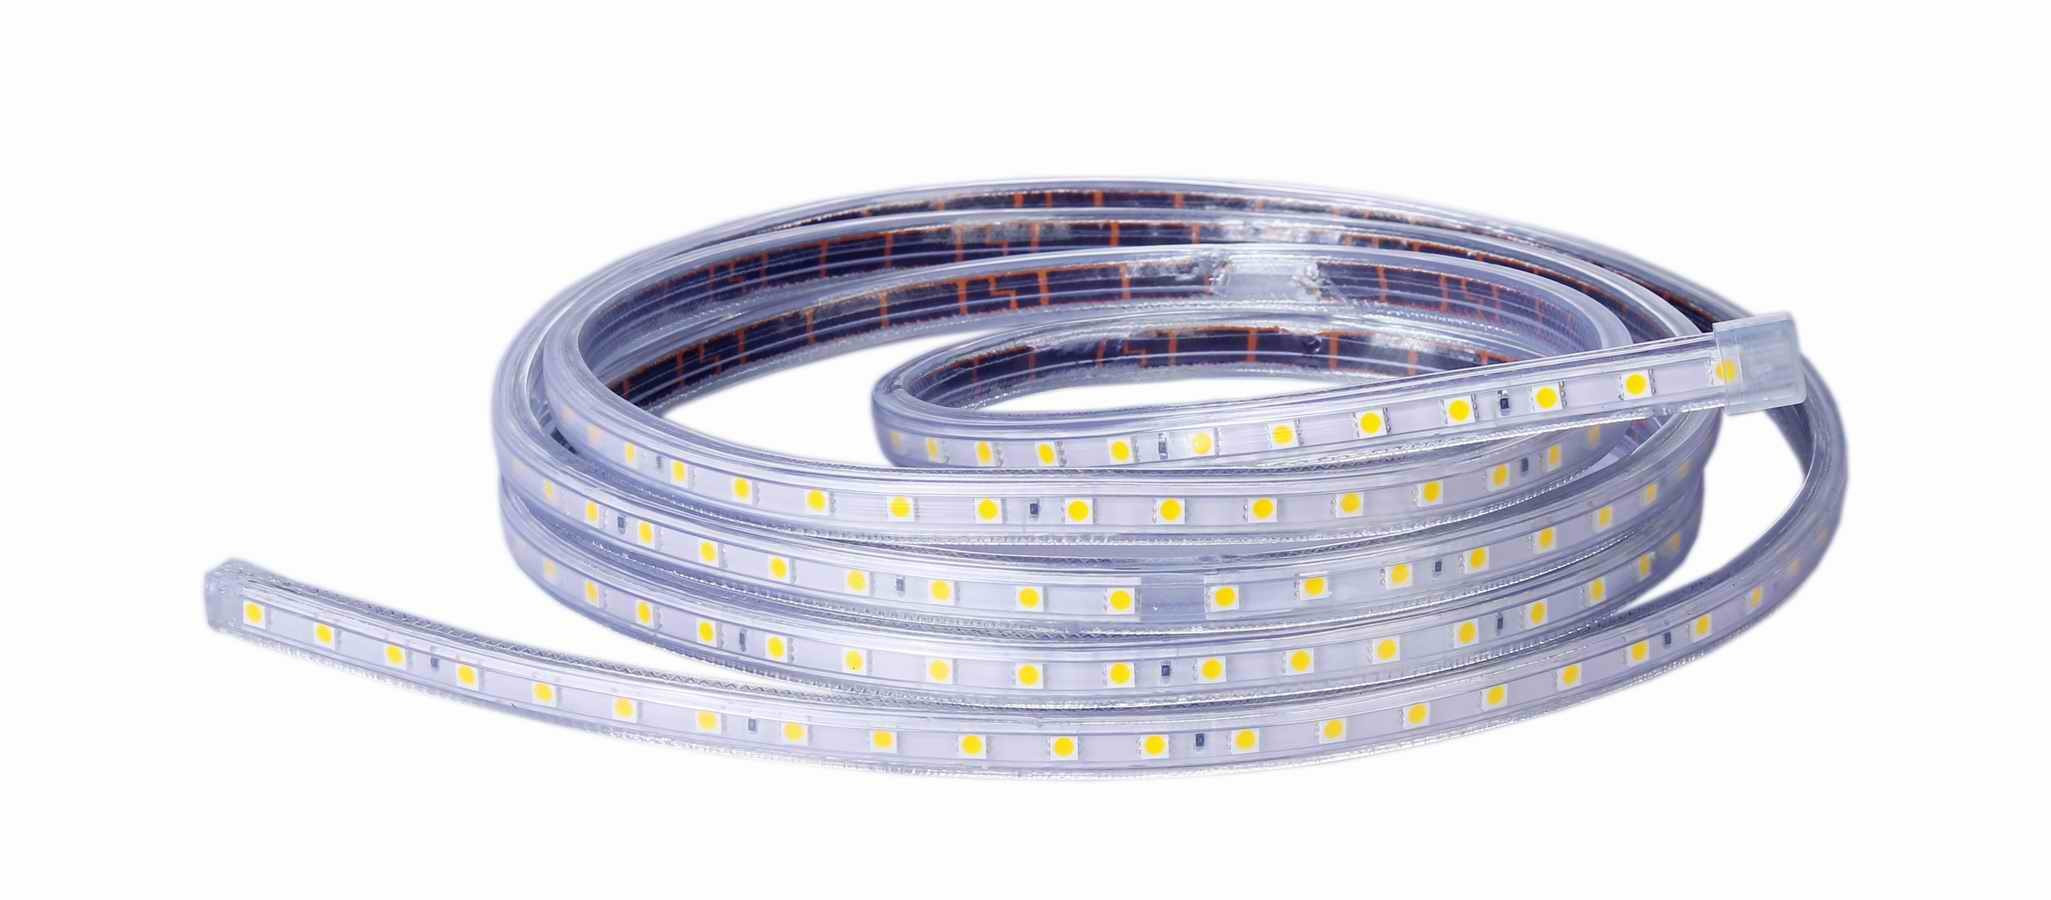 Comprar Tiras De Led Maravilloso Led Flexible Strip Light Smd5050 220v 30led Meter – Led Of Comprar Tiras De Led Arriba Tira De 300 Leds $ 699 00 En Mercado Libre